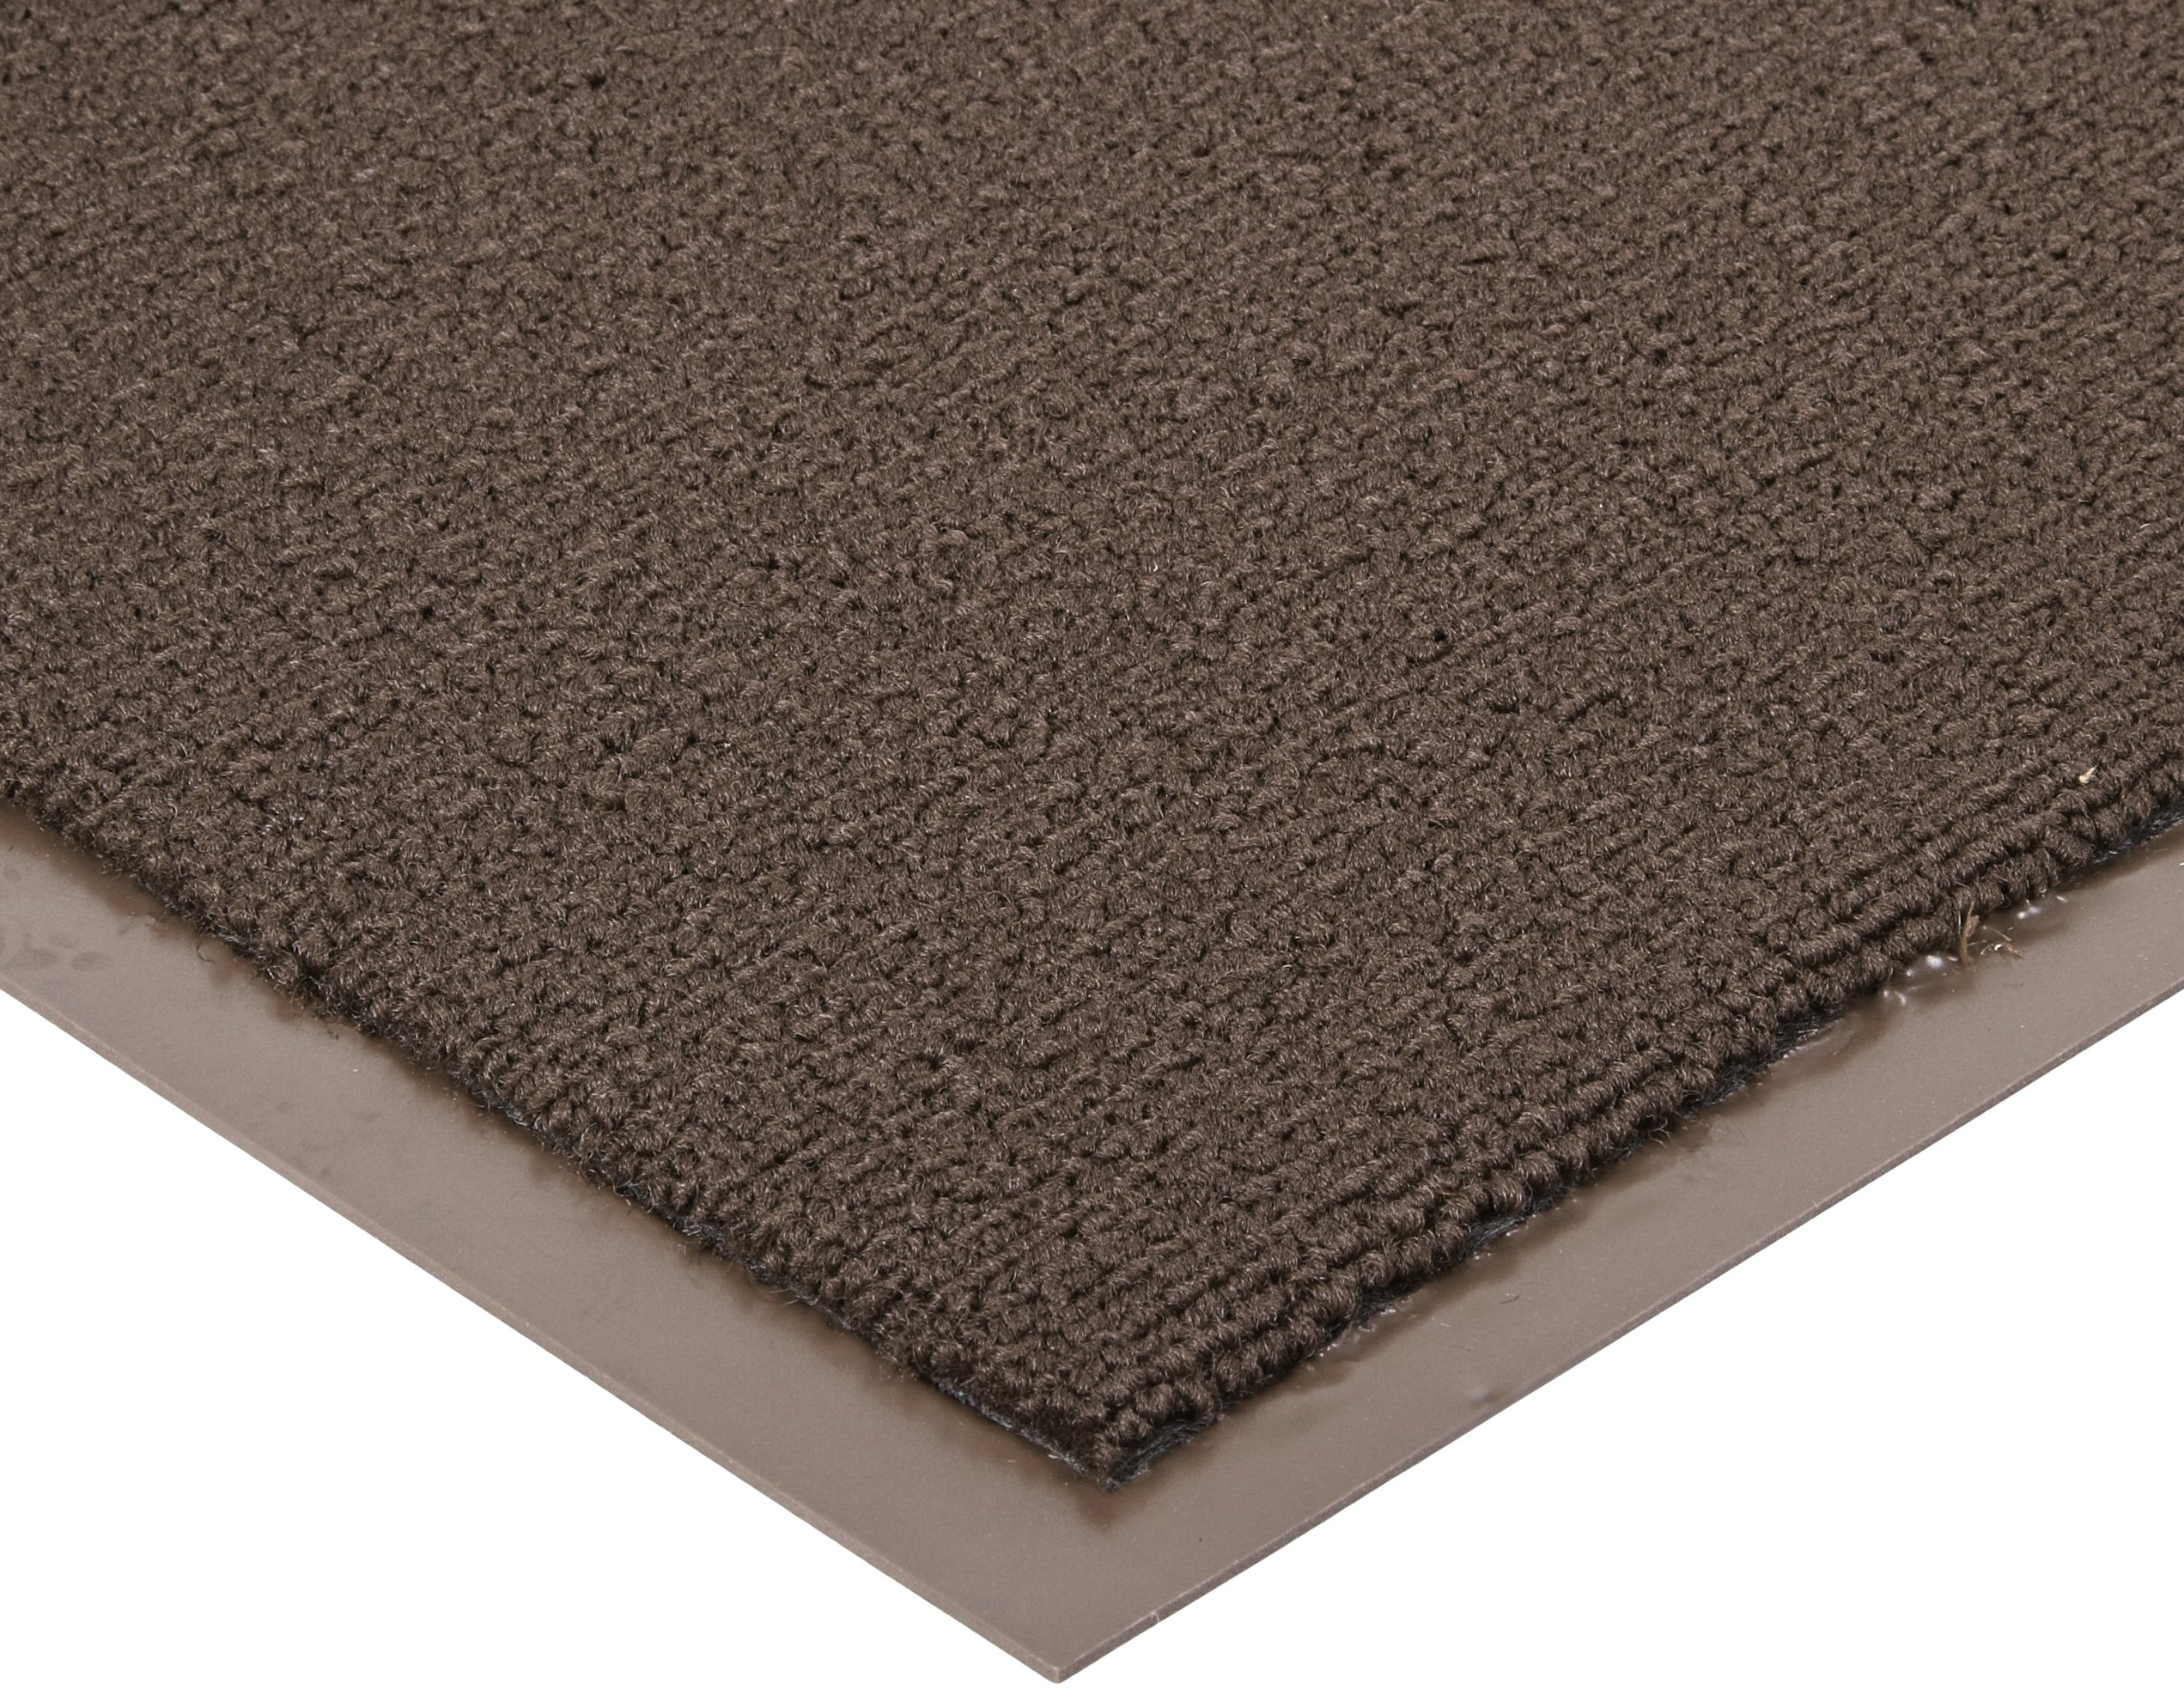 Notrax 137 Opera Entrance Mat, for Upscale Entrances, 3' Width x 12' Length x 3/8'' Thickness, Brown by NoTrax